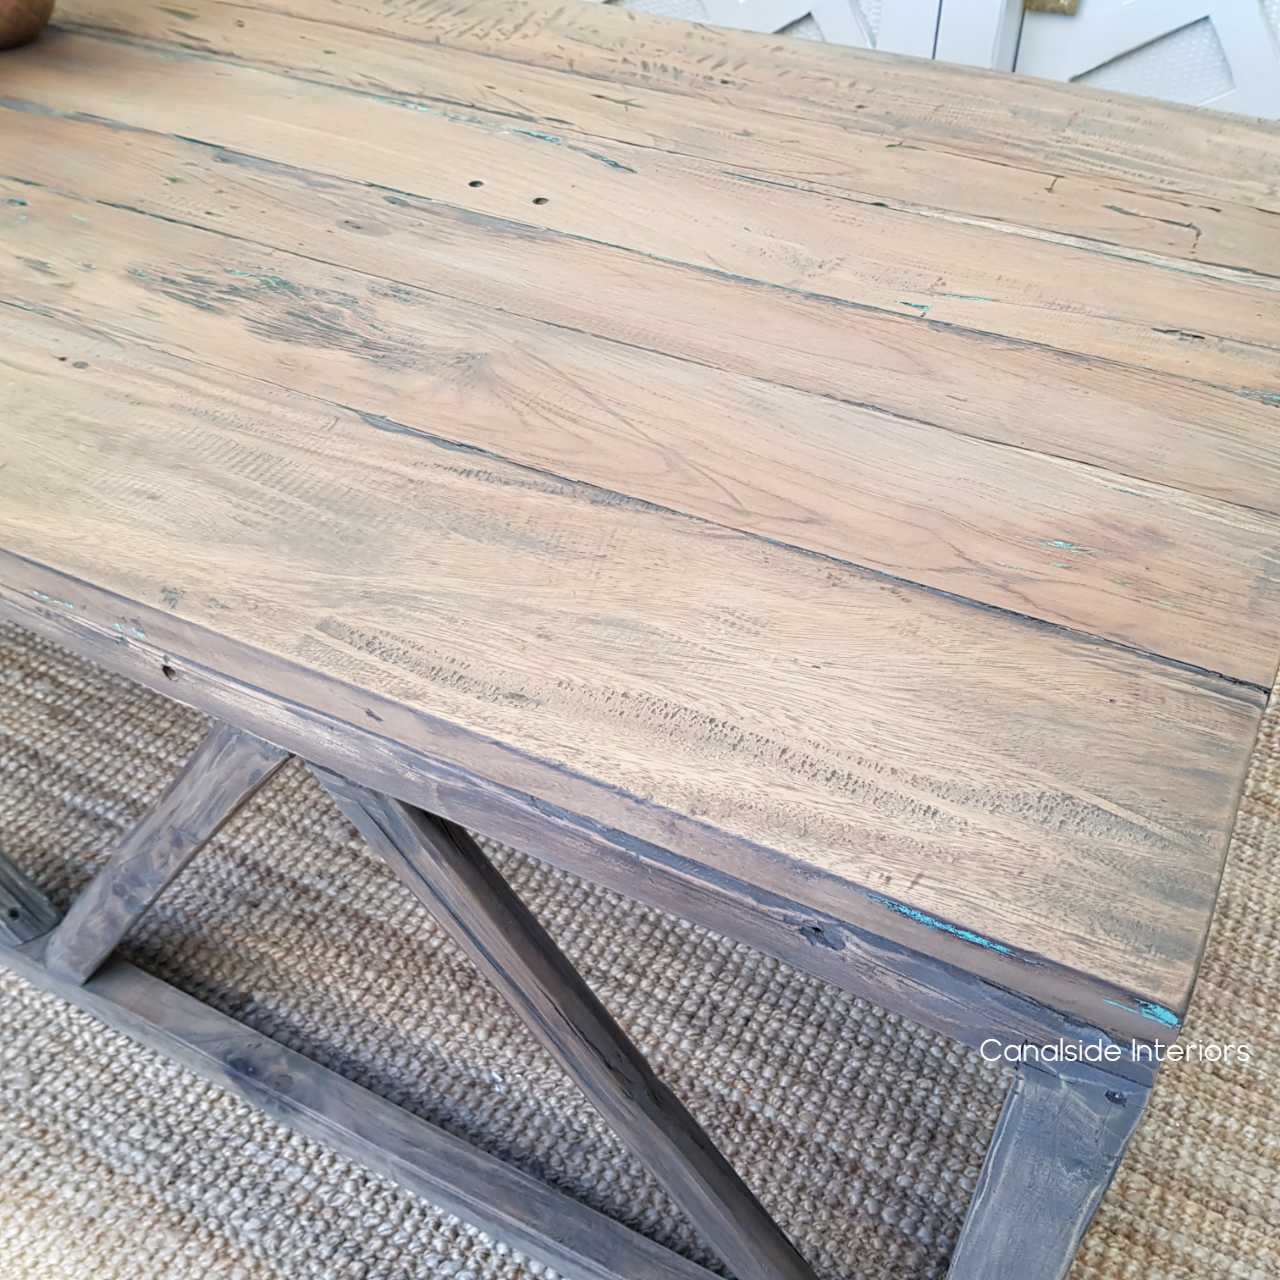 Cassowary Coffee Table Reclaimed Wood TABLES, HAMPTONS Style, PLANTATION Style, TABLES Coffee Tables, LIVING Room, LIVING Coffee & Side Tables, coffee table, industrial, rustic, recycled, character